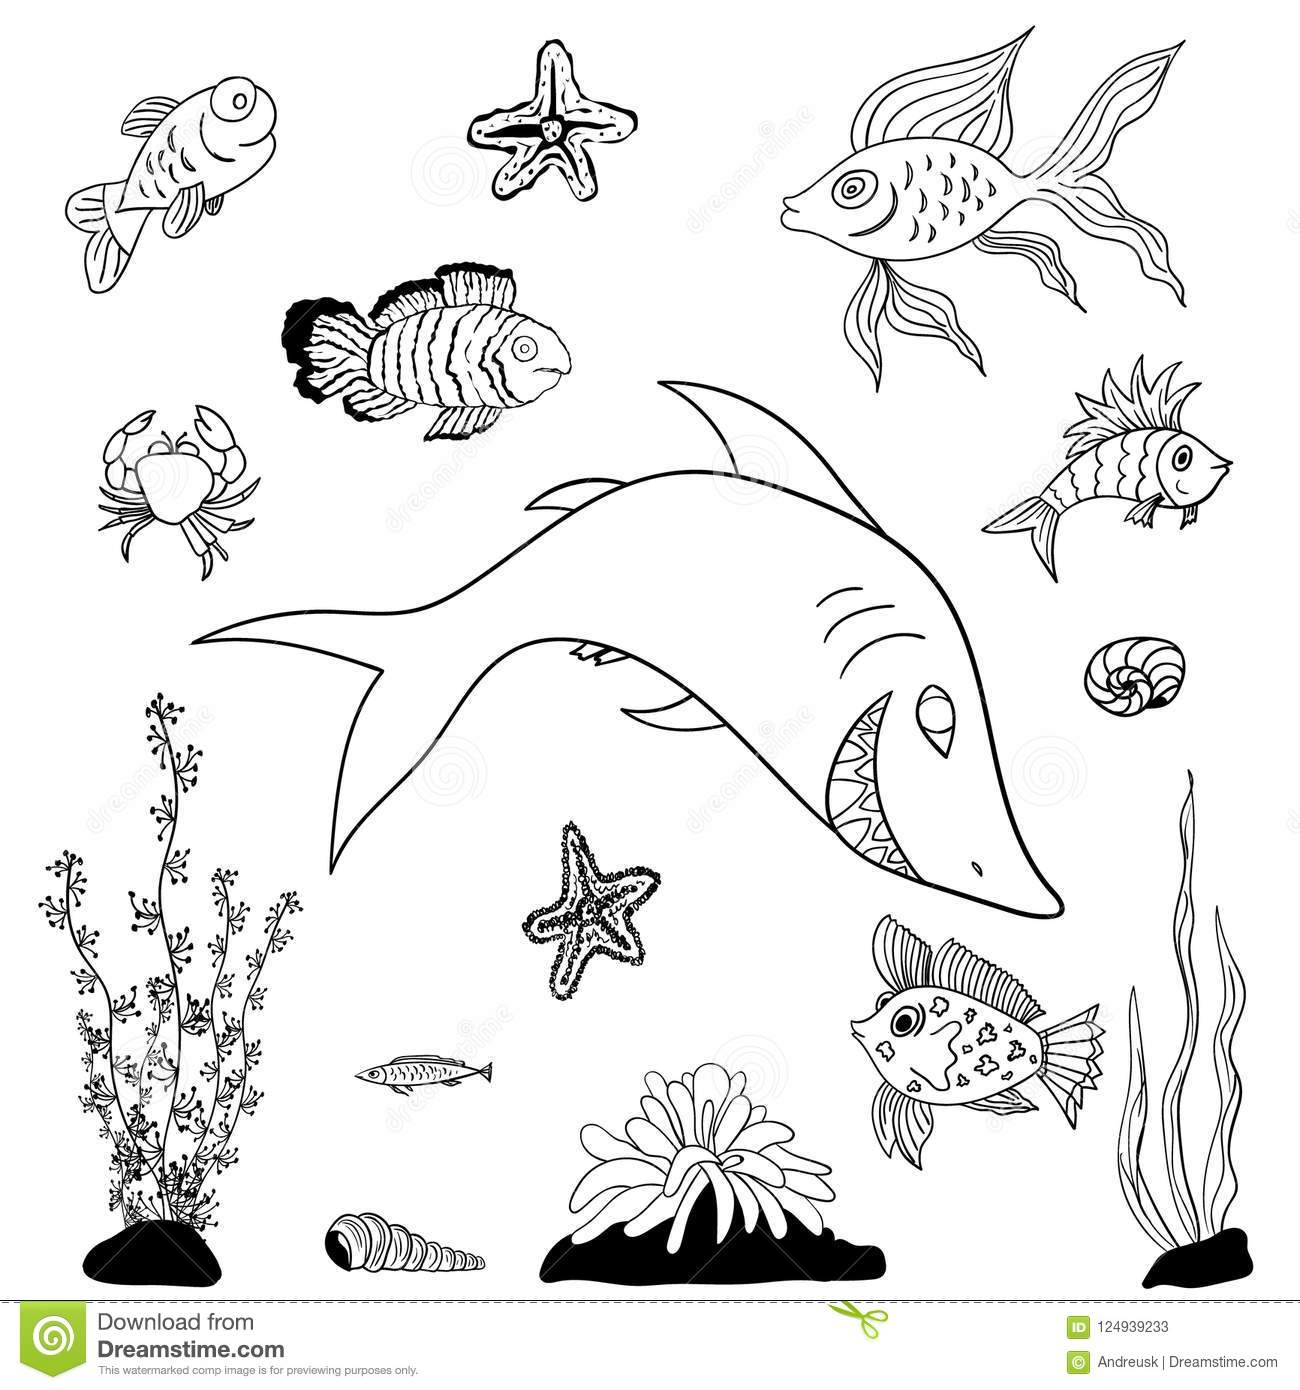 Fishes coloring pages stock vector. Illustration of ...